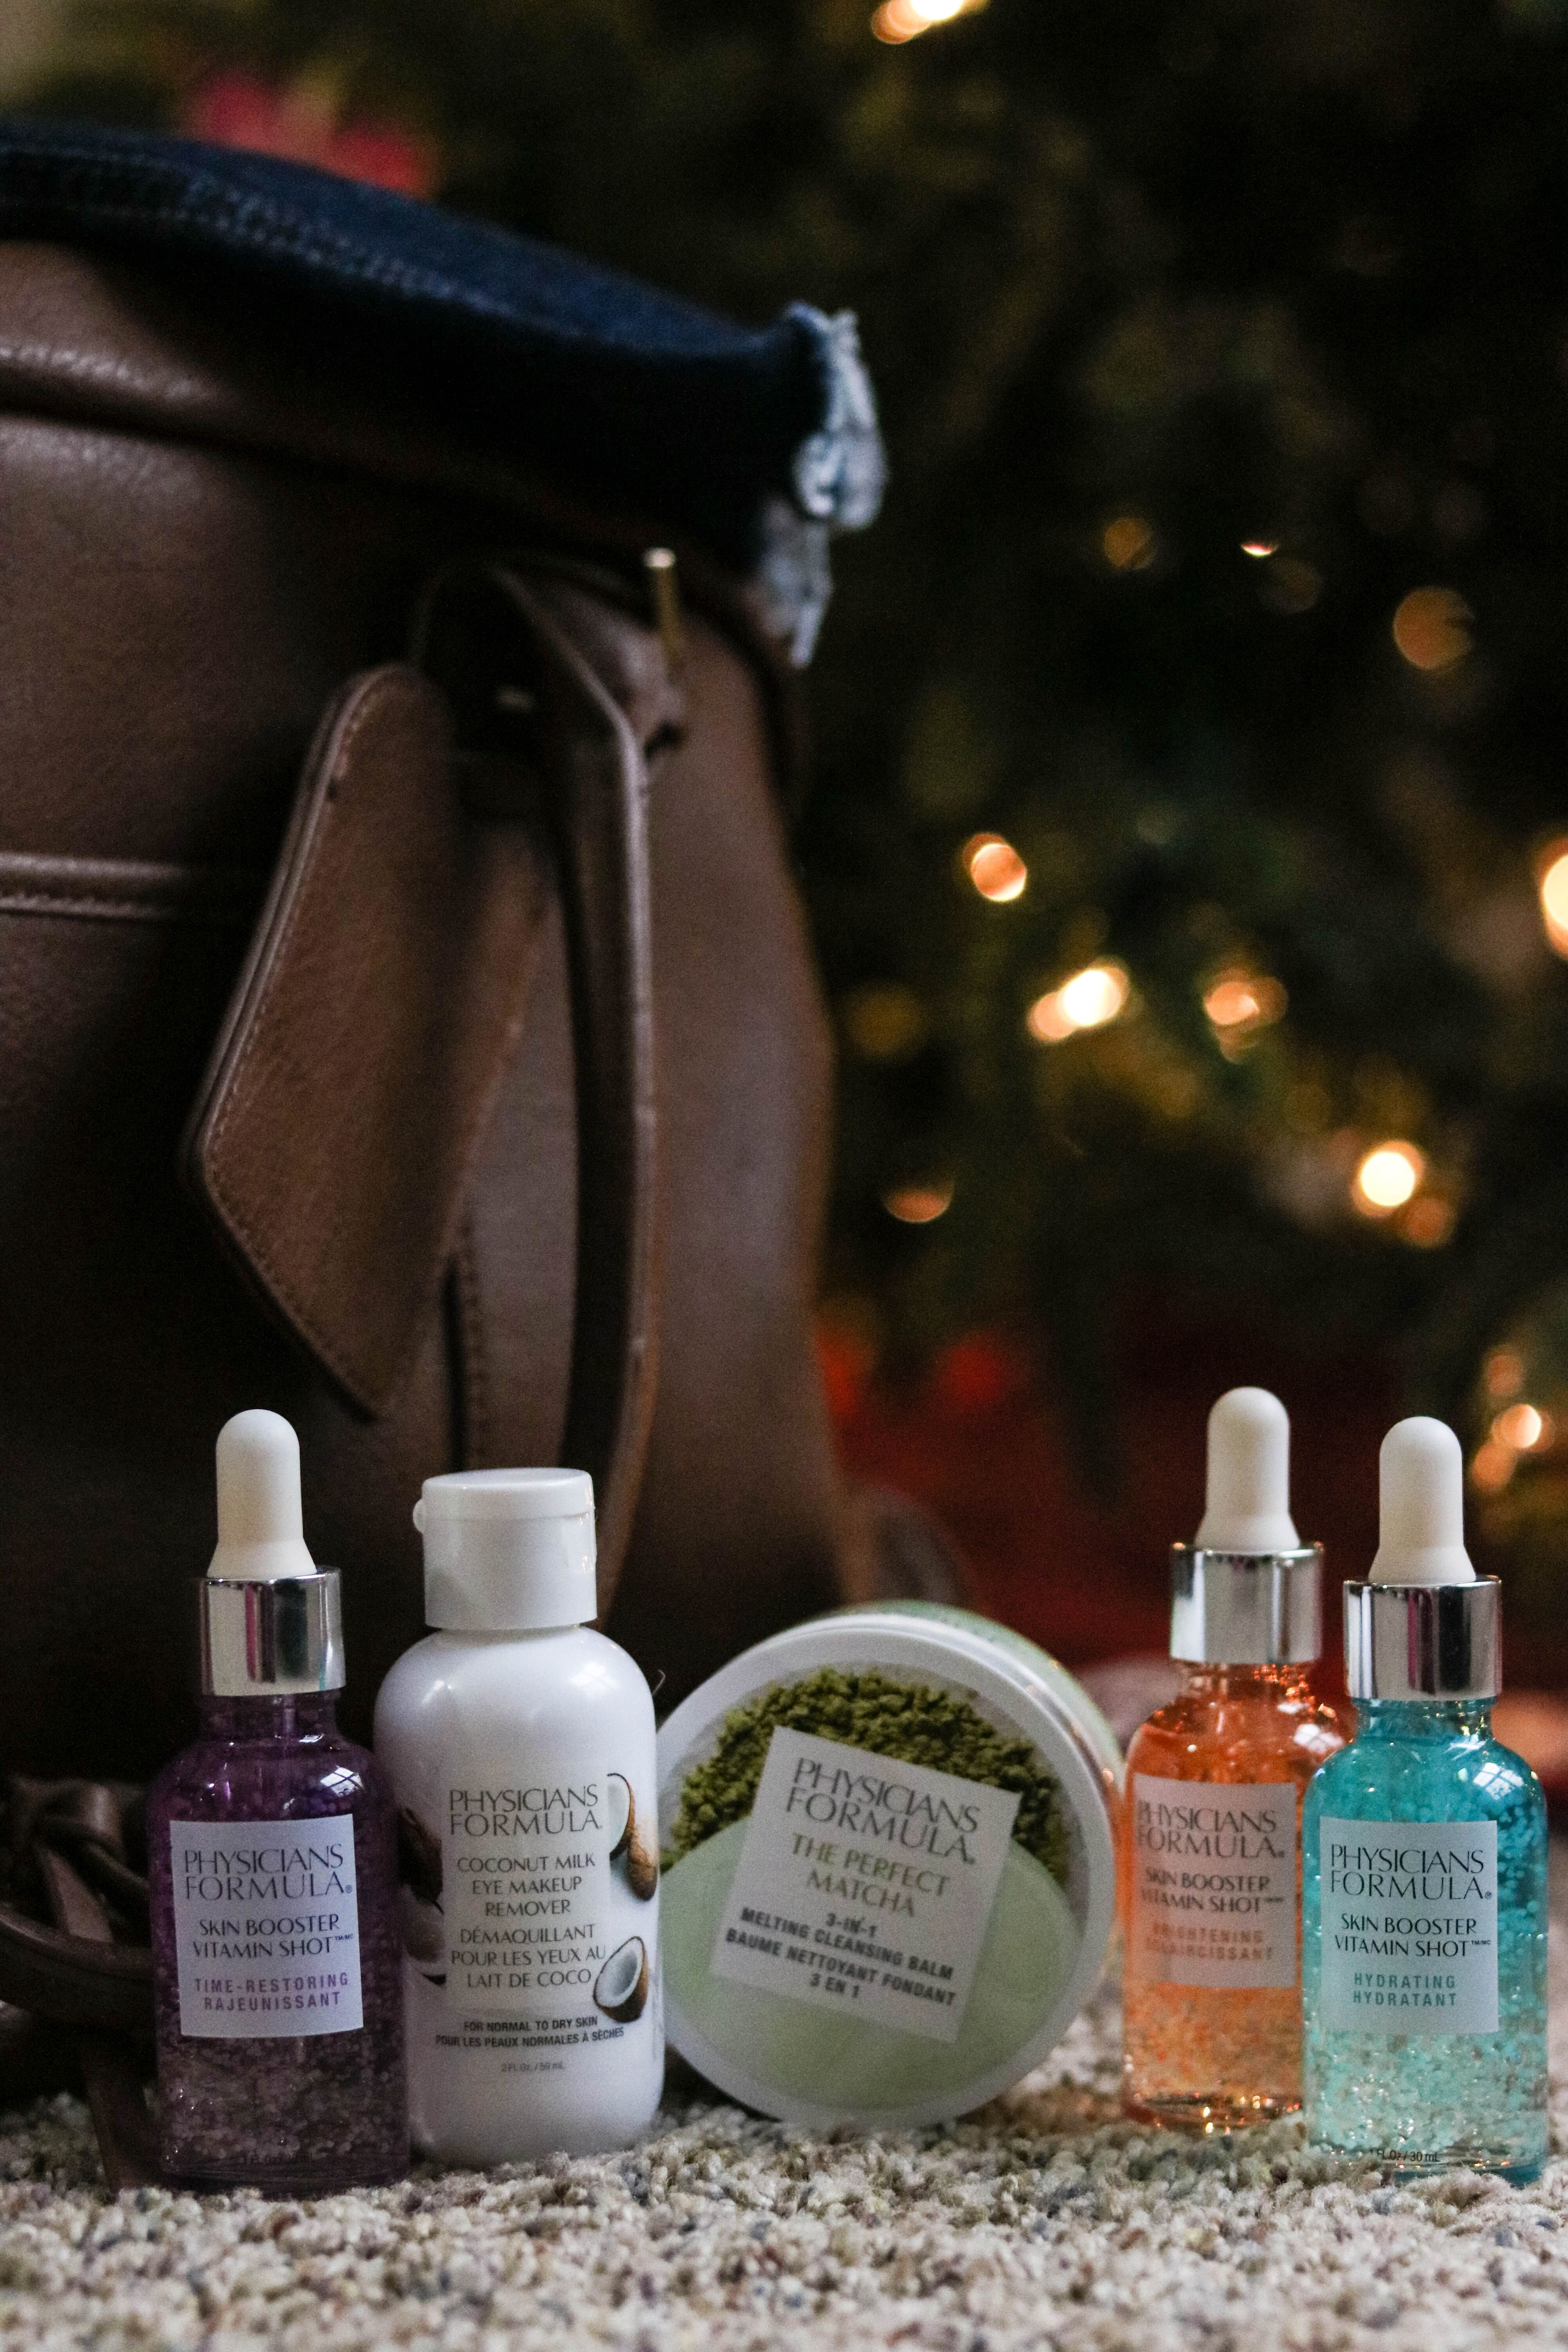 The Latest TravelFriendly Skincare Launch (From the